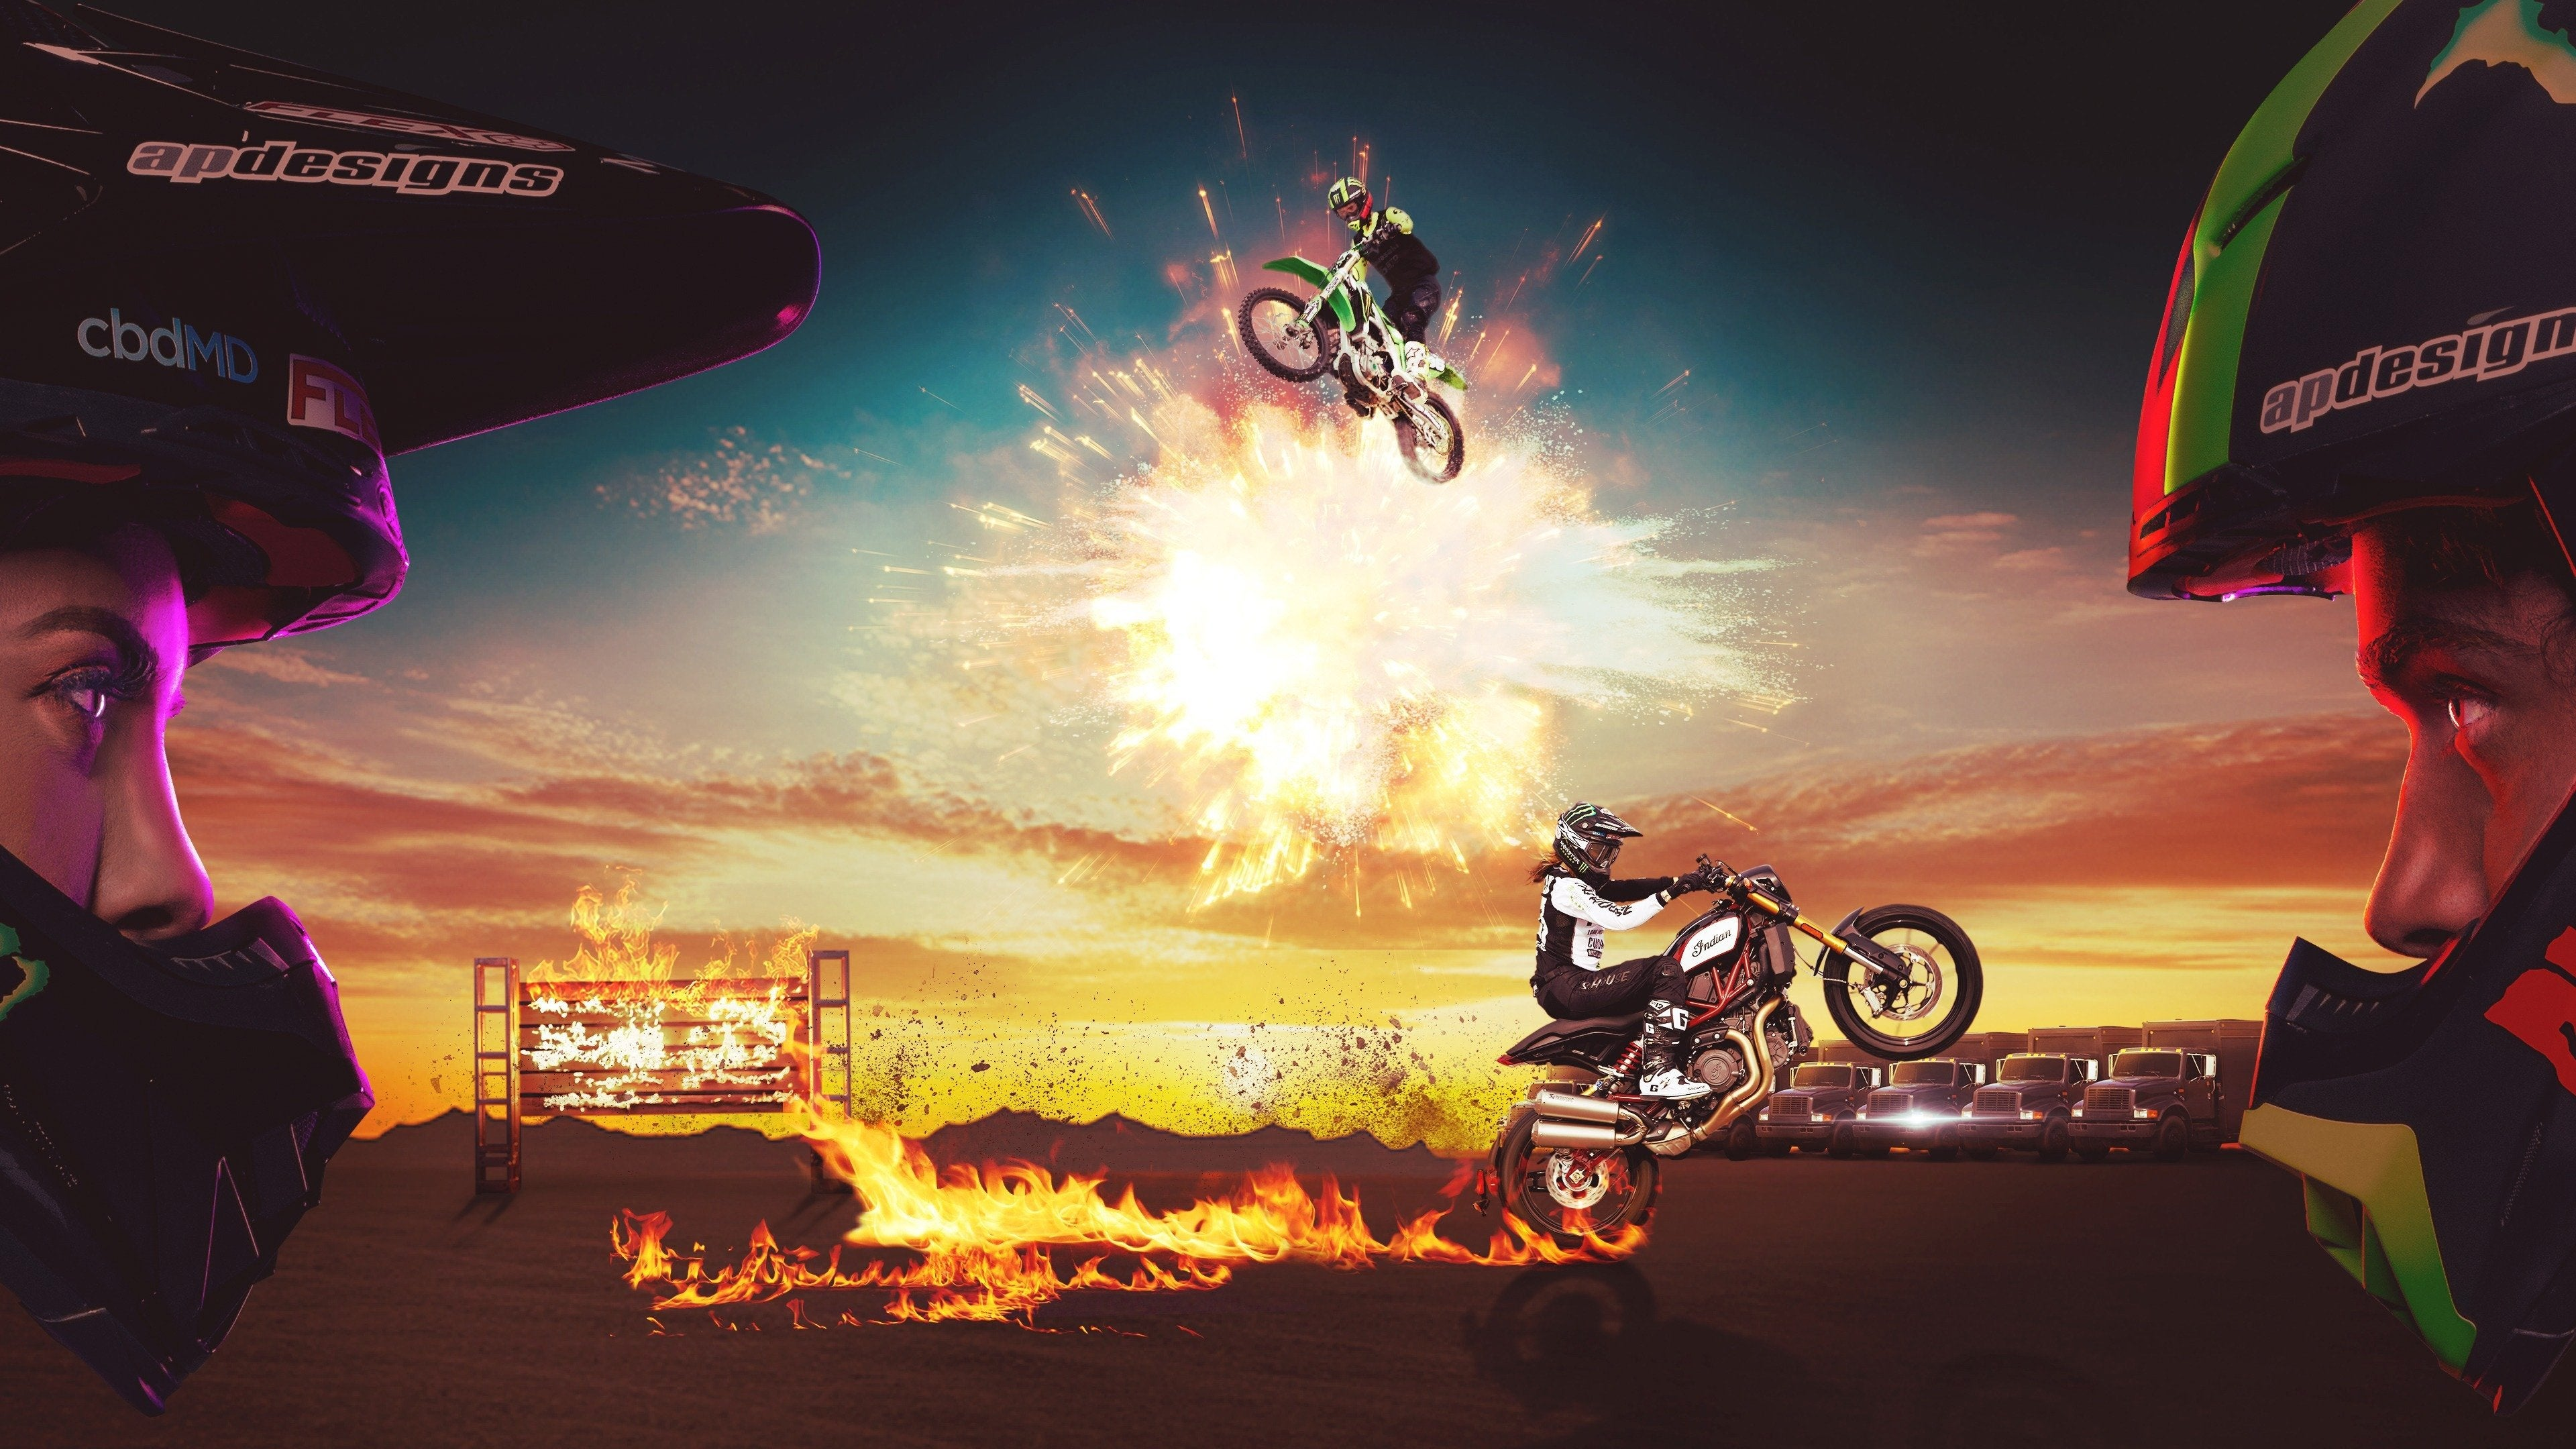 Evel Live: Behind the Scenes